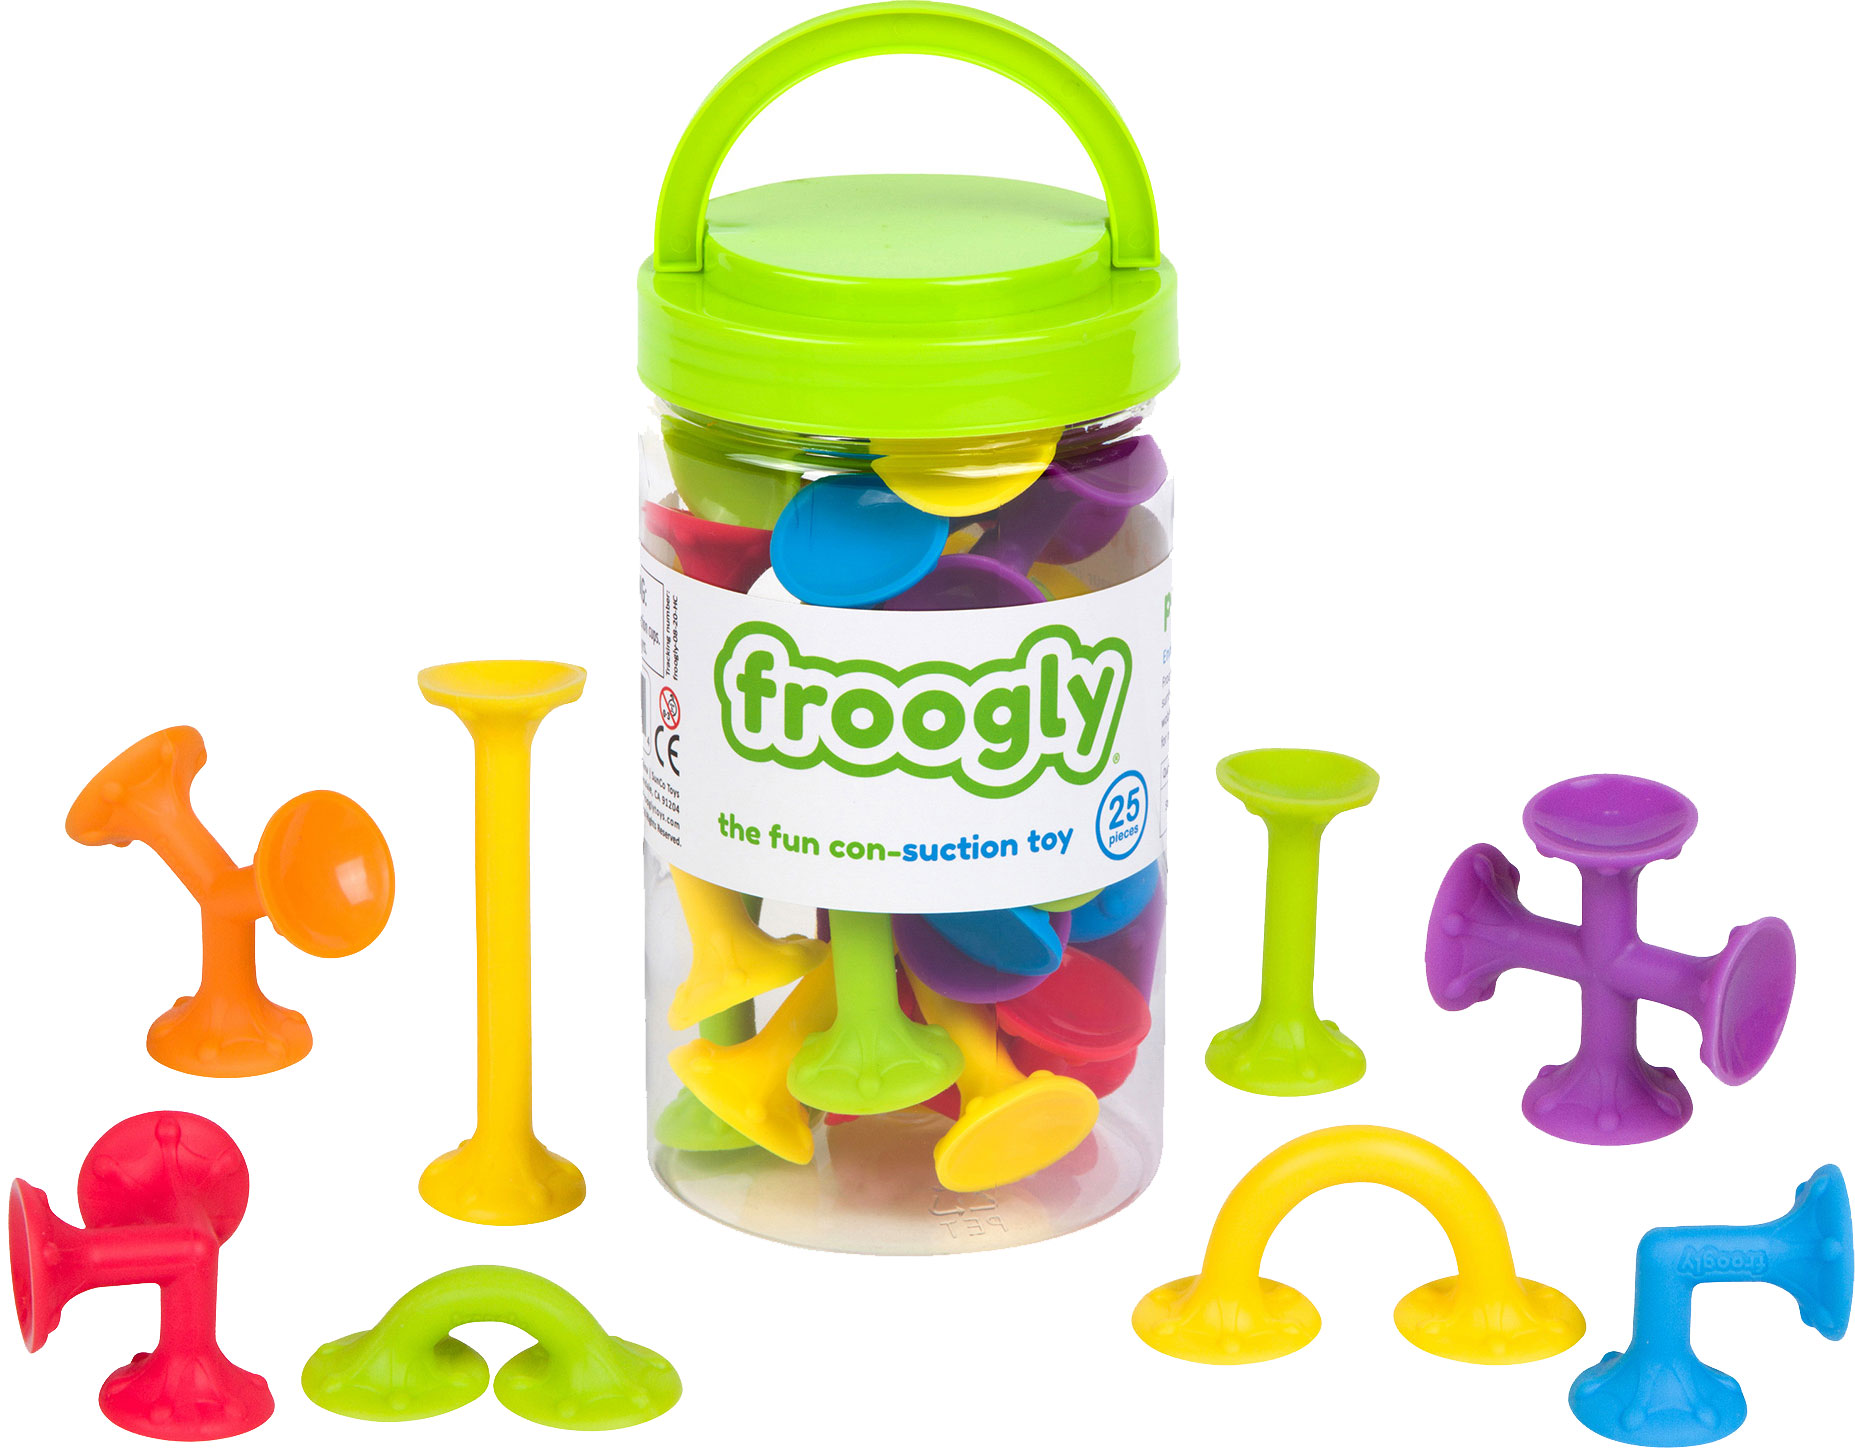 Froogly 25 pcs, innovative design providing stronger suction power